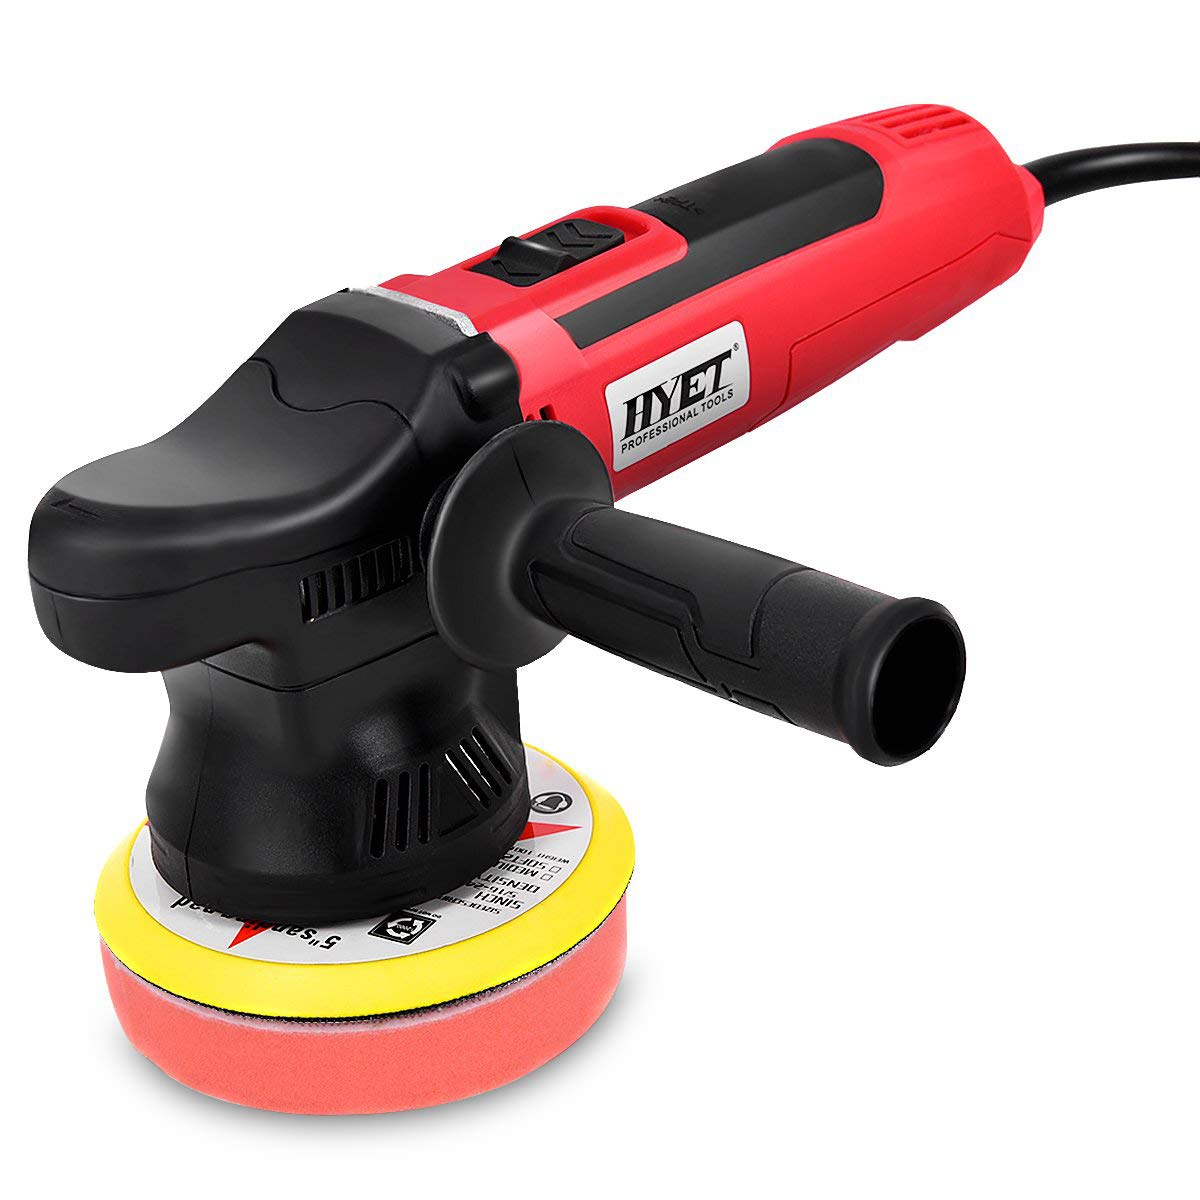 Goplus Random Orbital Sander Variable Speed Polisher Electrical Dual-Action Polisher Grinder Buffer (5 inch) by Goplus